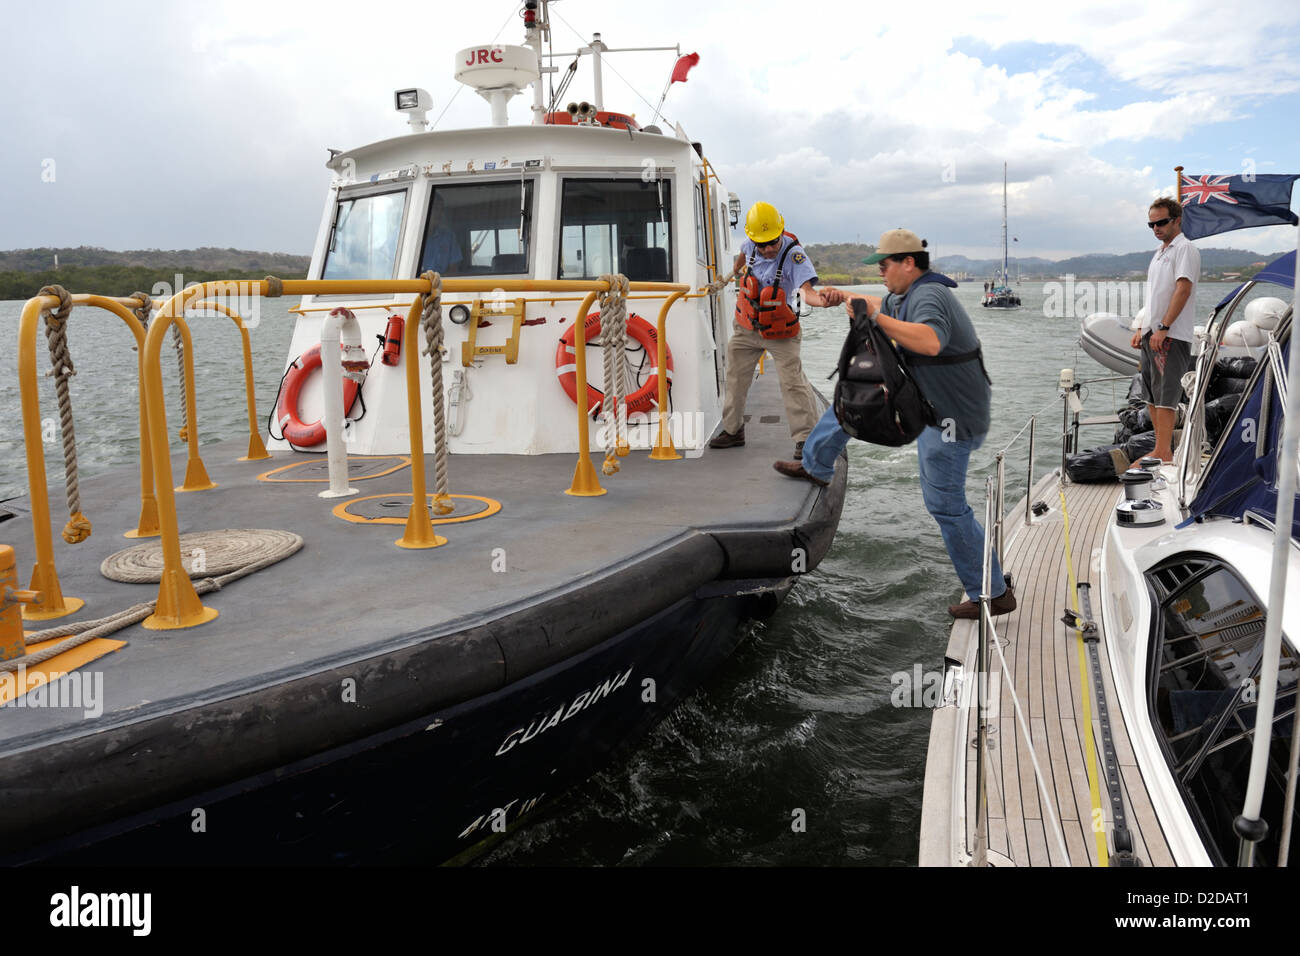 A Panama Canal advisor jumping onto an ACP pilot boat alongside a cruising yacht at the Pacific end of the Panama - Stock Image